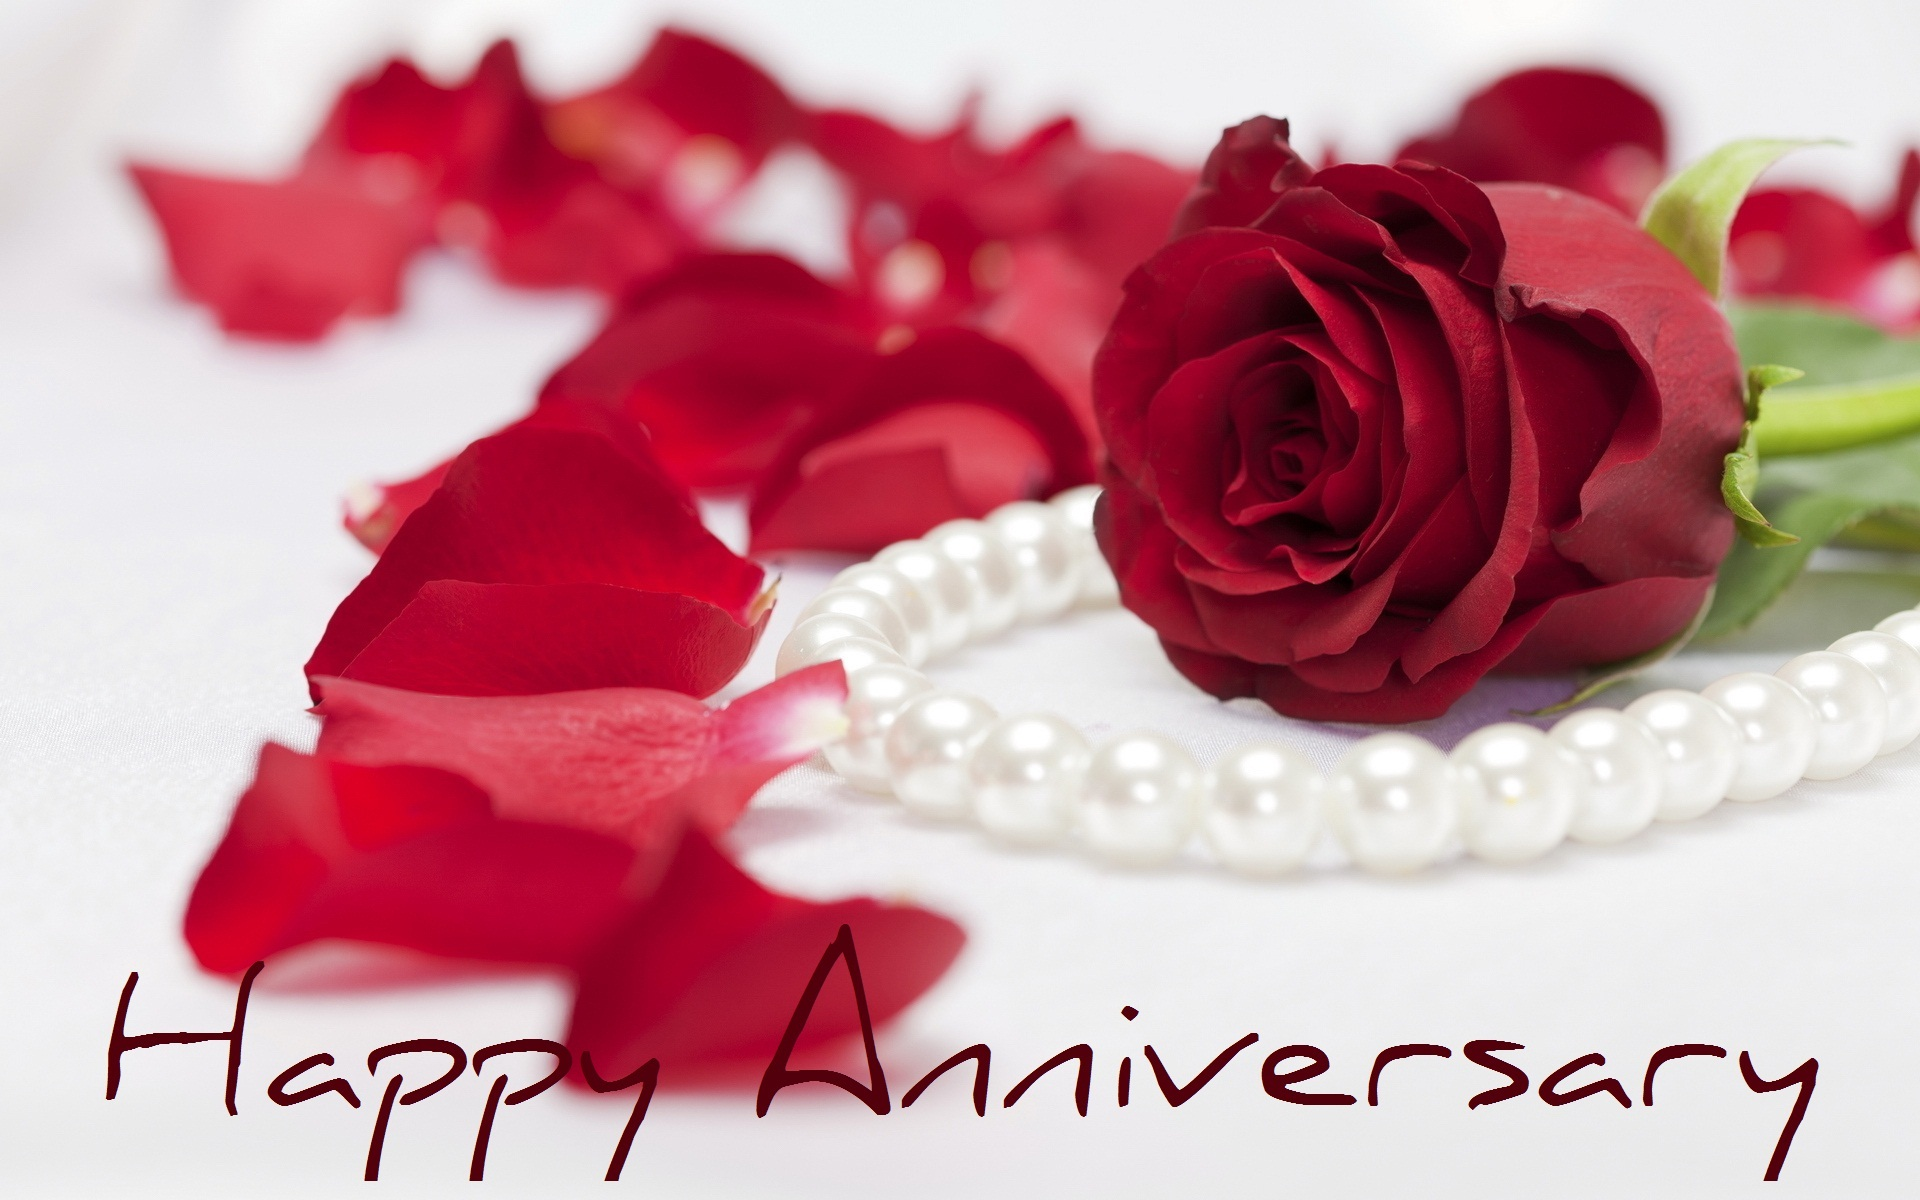 Happy wedding anniversary wishes images cards greetings photos for happy marriage anniversary cards greetings for husband wife m4hsunfo